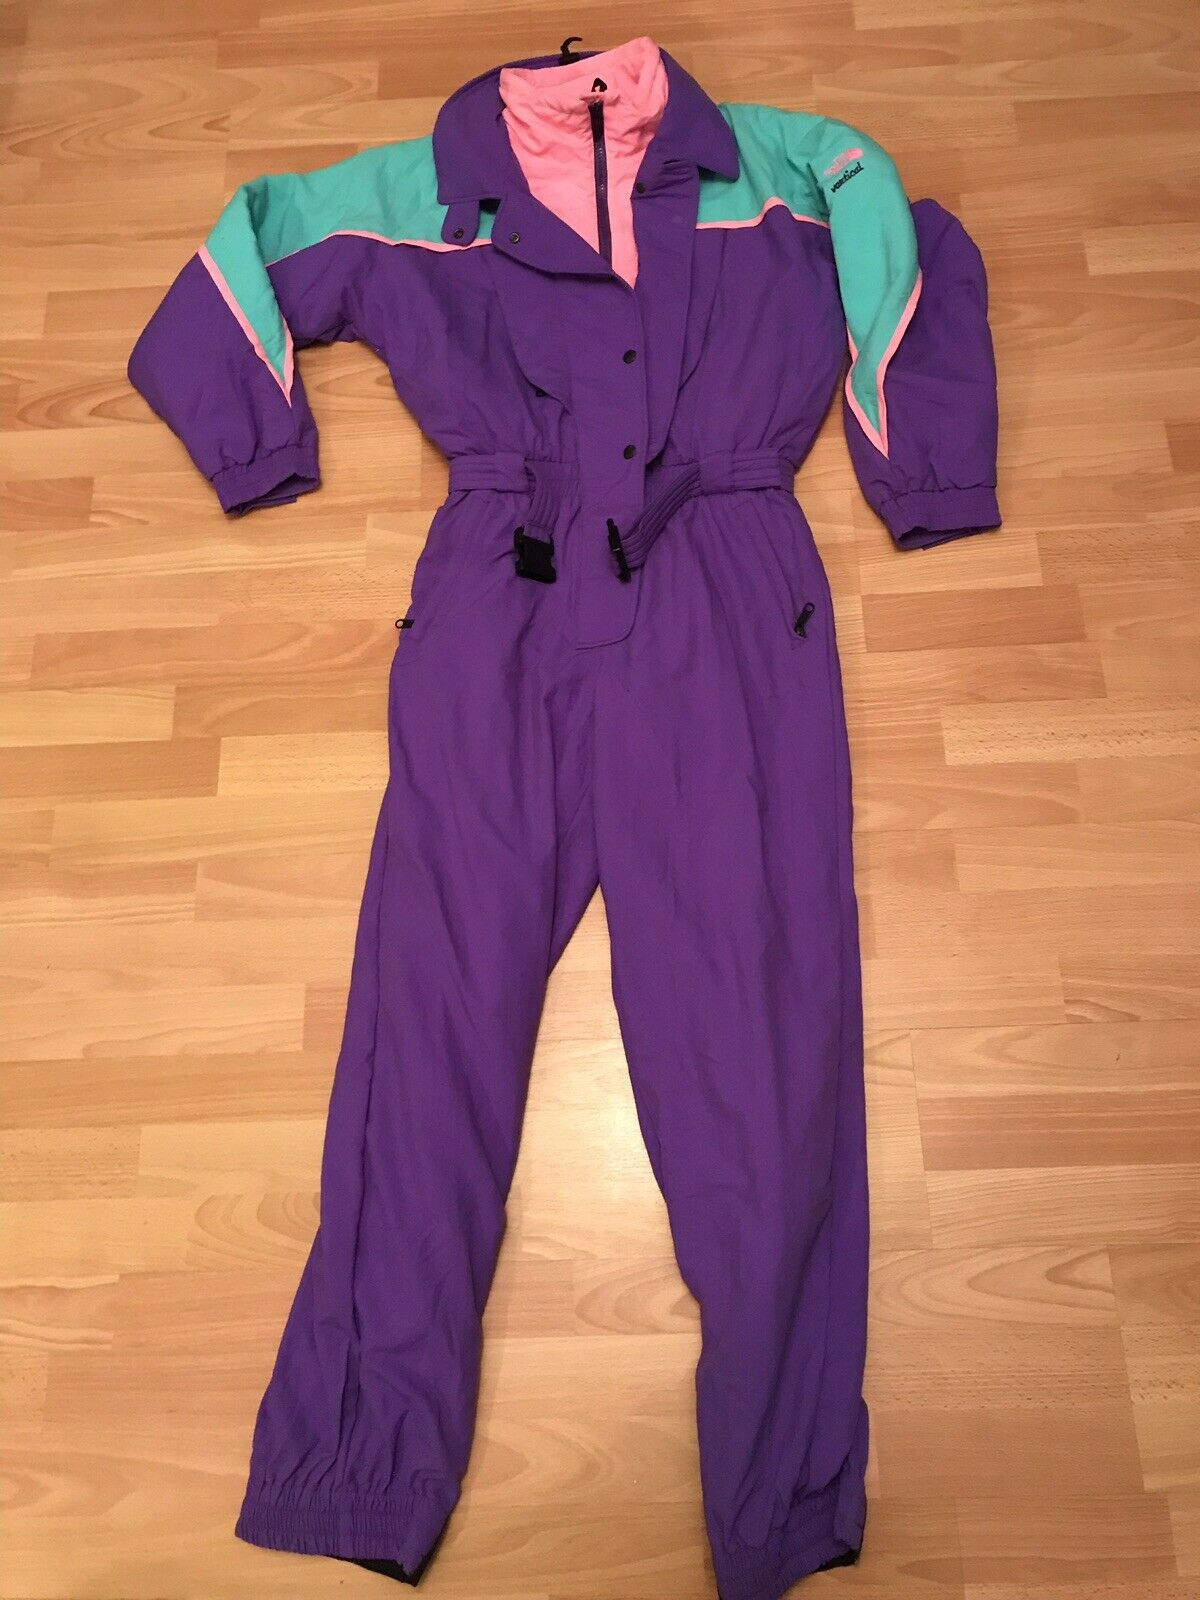 Rare Vtg Women's  The North Face greenical Gore-Tex Snowsuit Ski Suit One-Piece 12  in stock